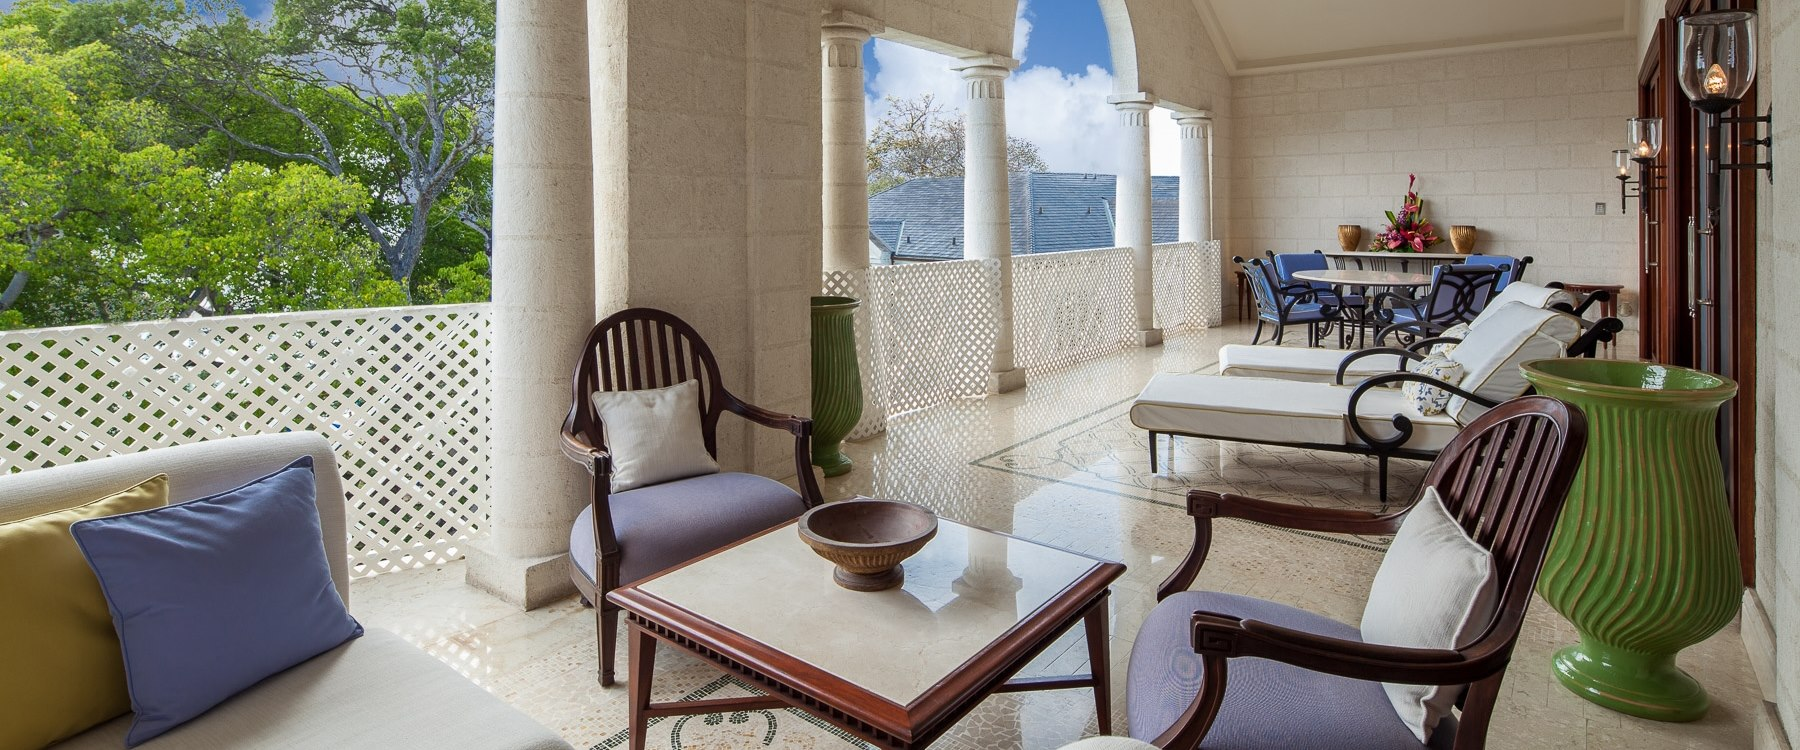 Penthouse Balcony at Sandy Lane, Barbados